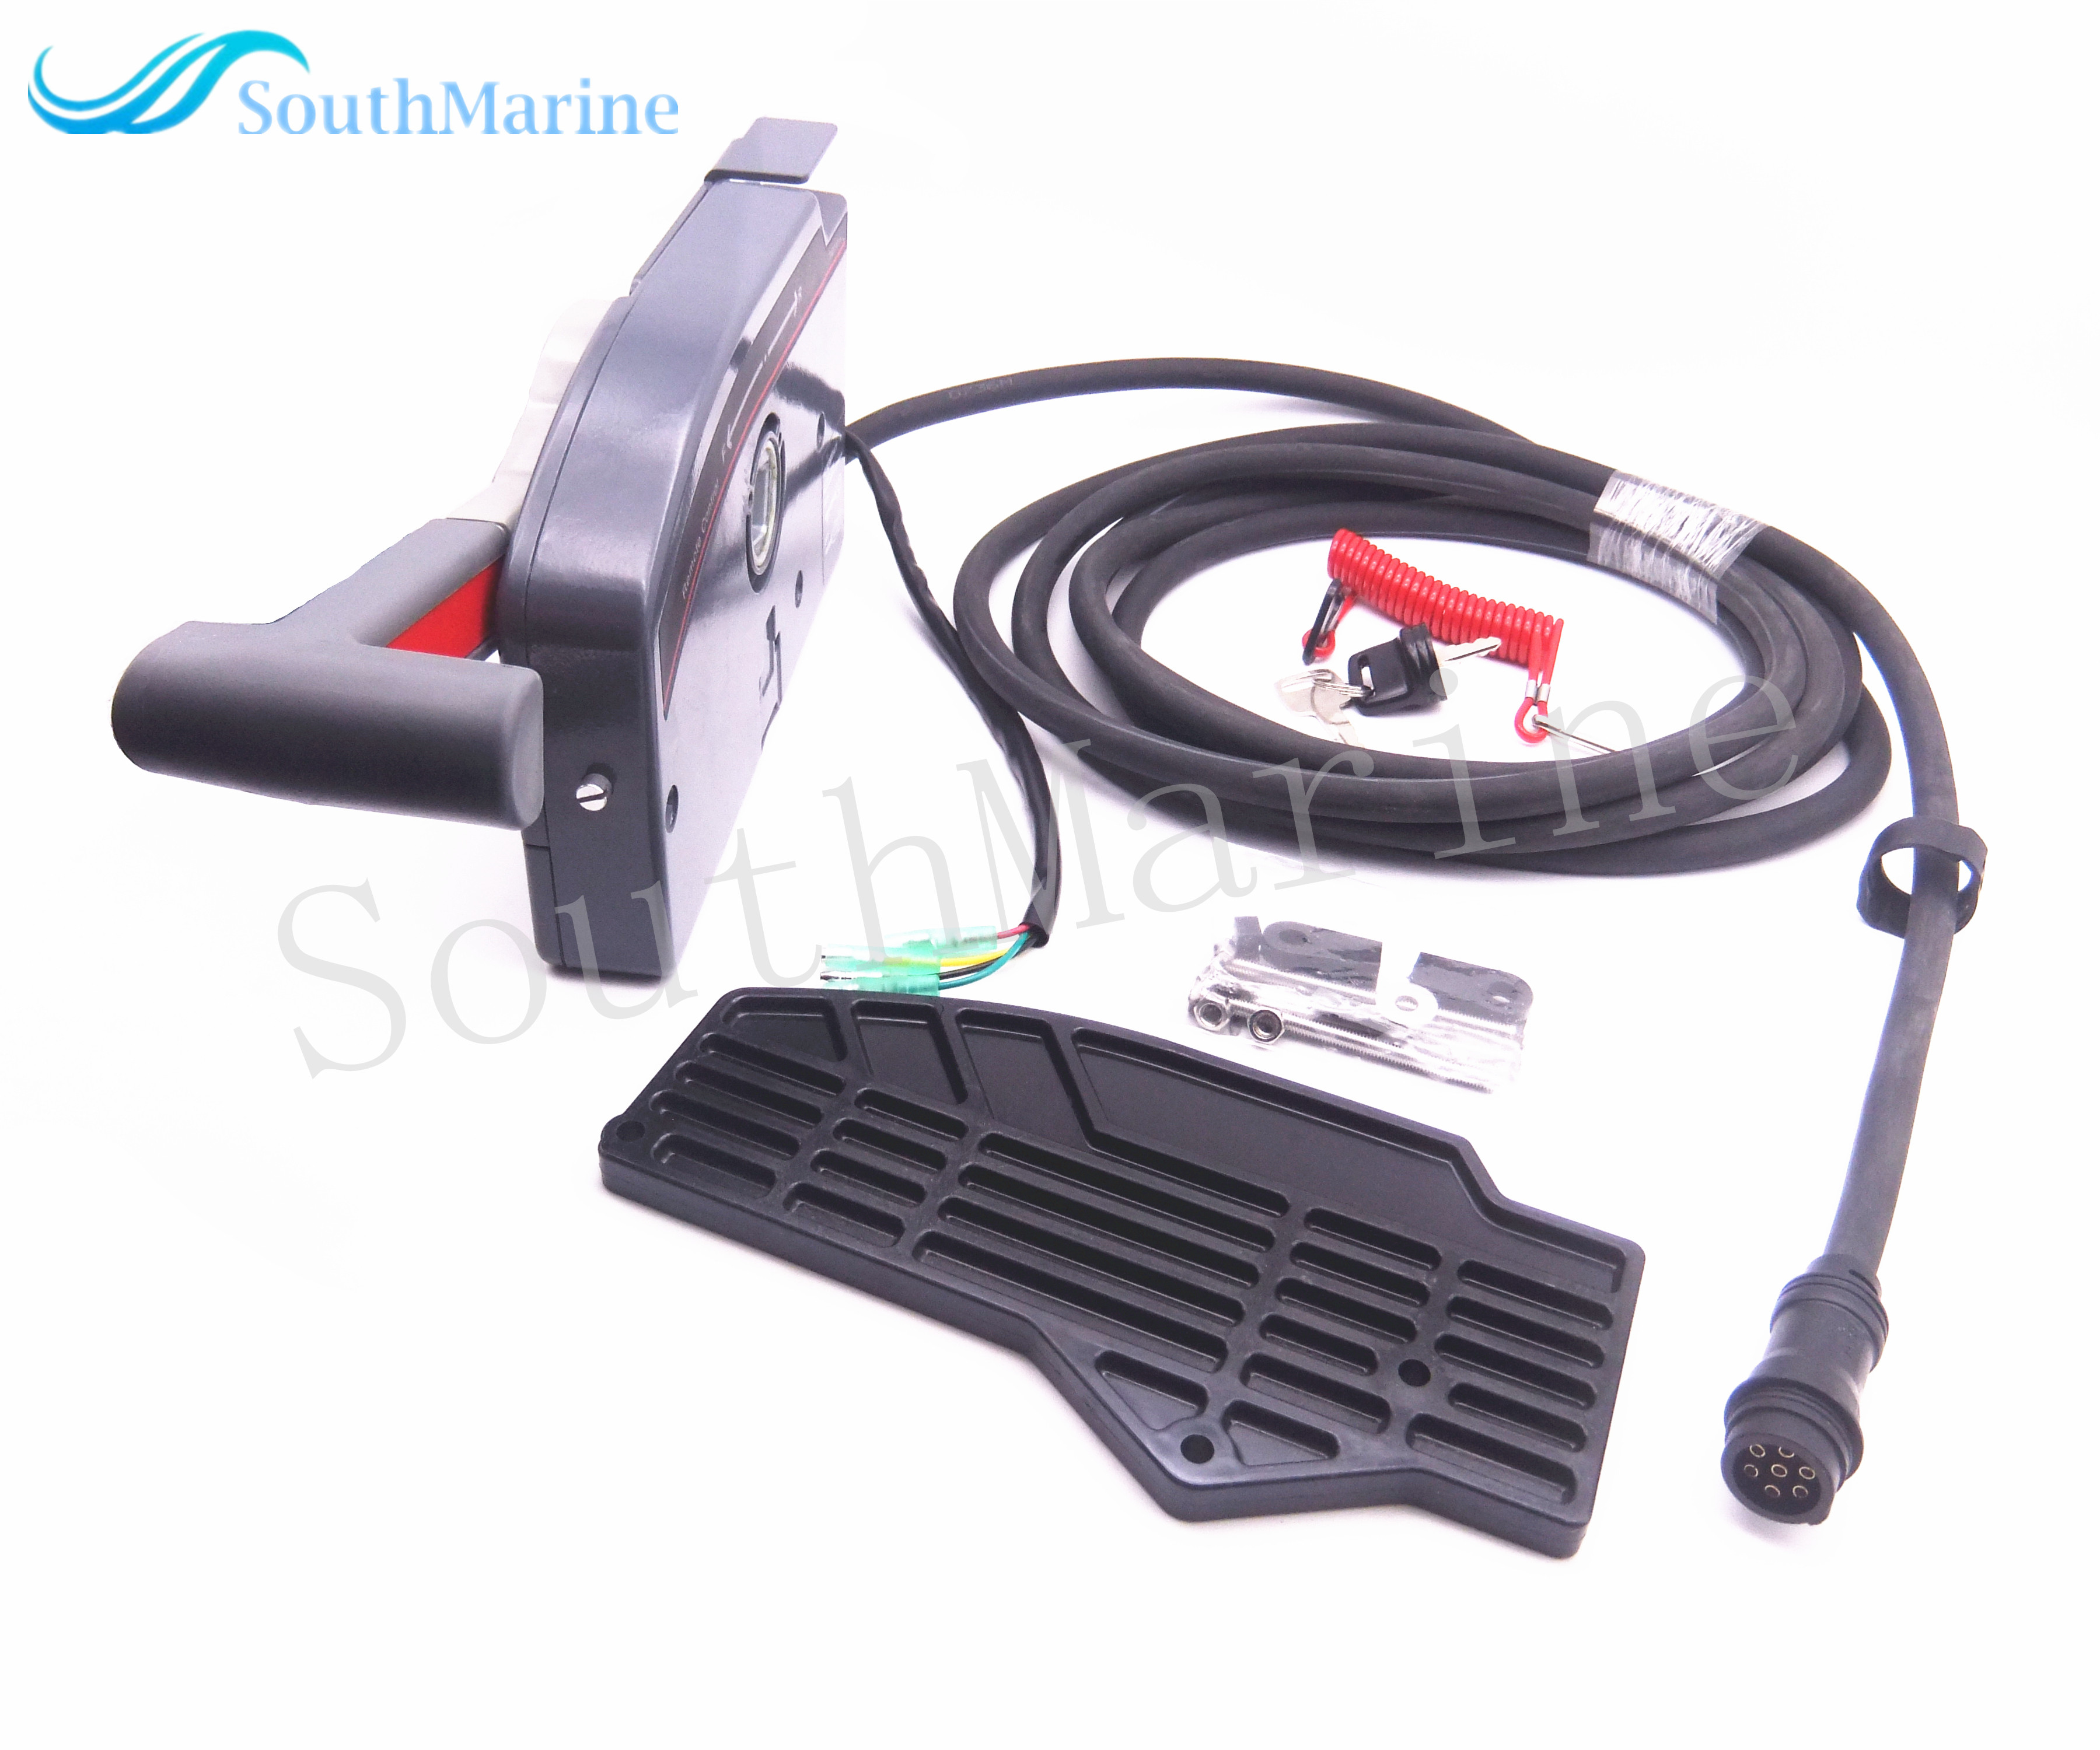 Outboard engine remote control box assy 703 48230 14 703 for Trolling motor remote control